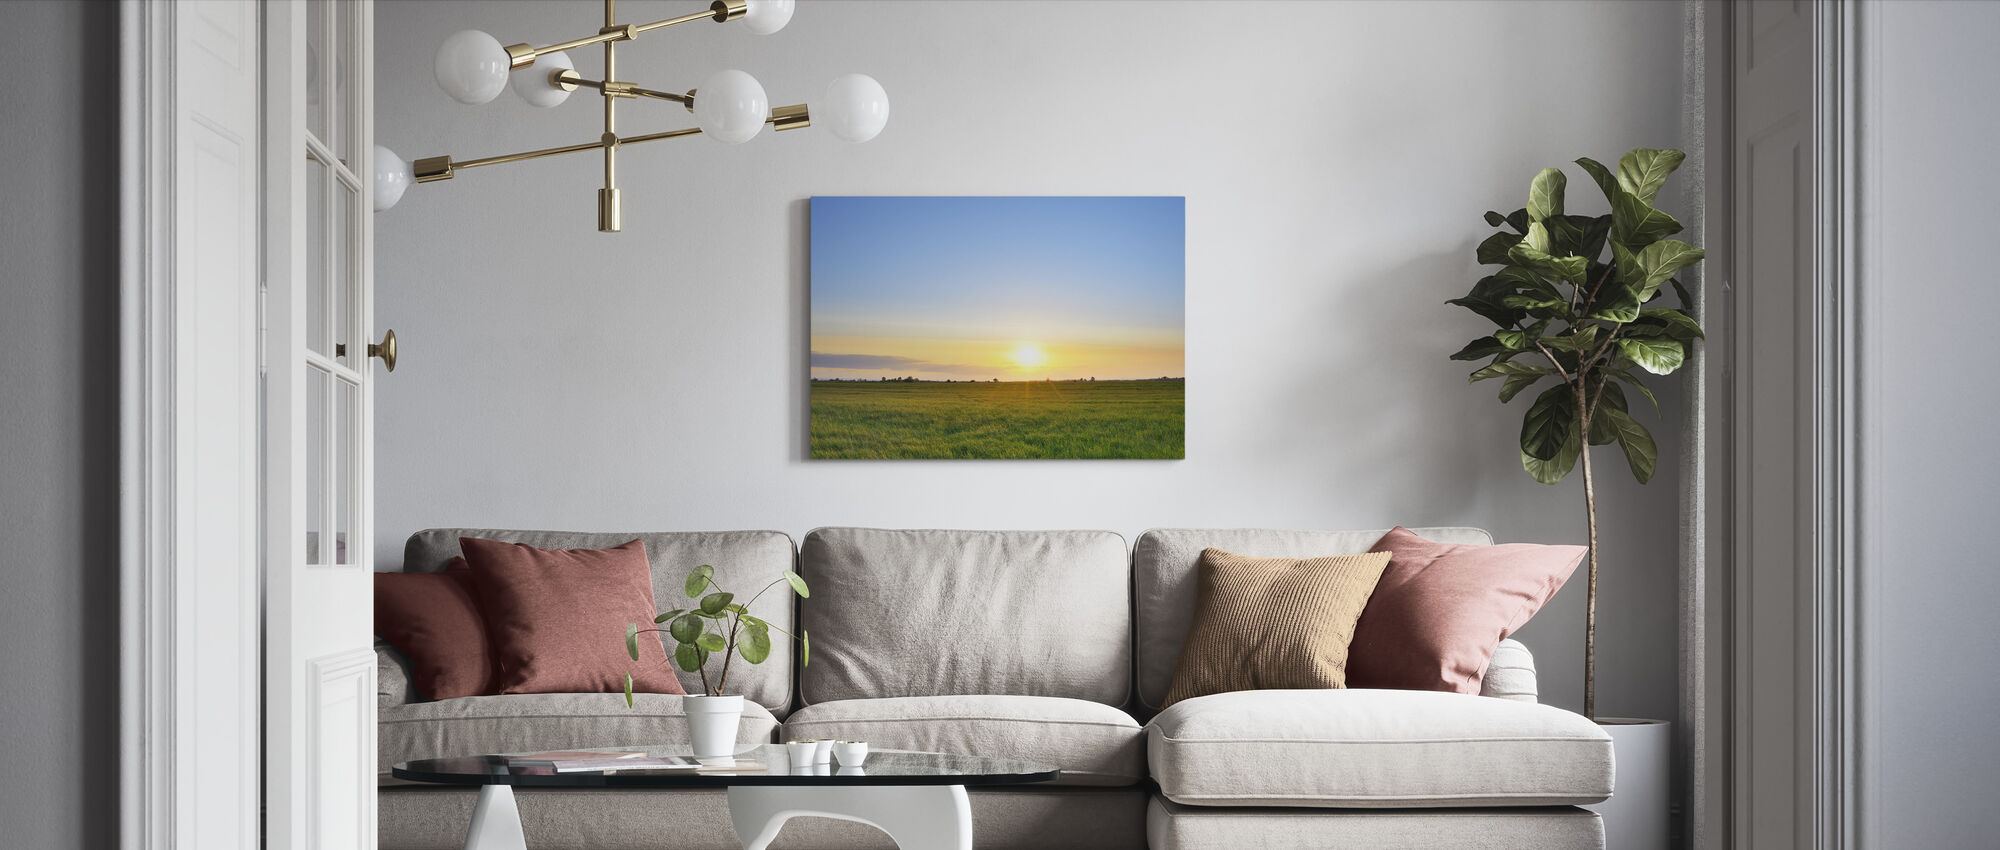 Meadow at Sunset - Canvas print - Living Room